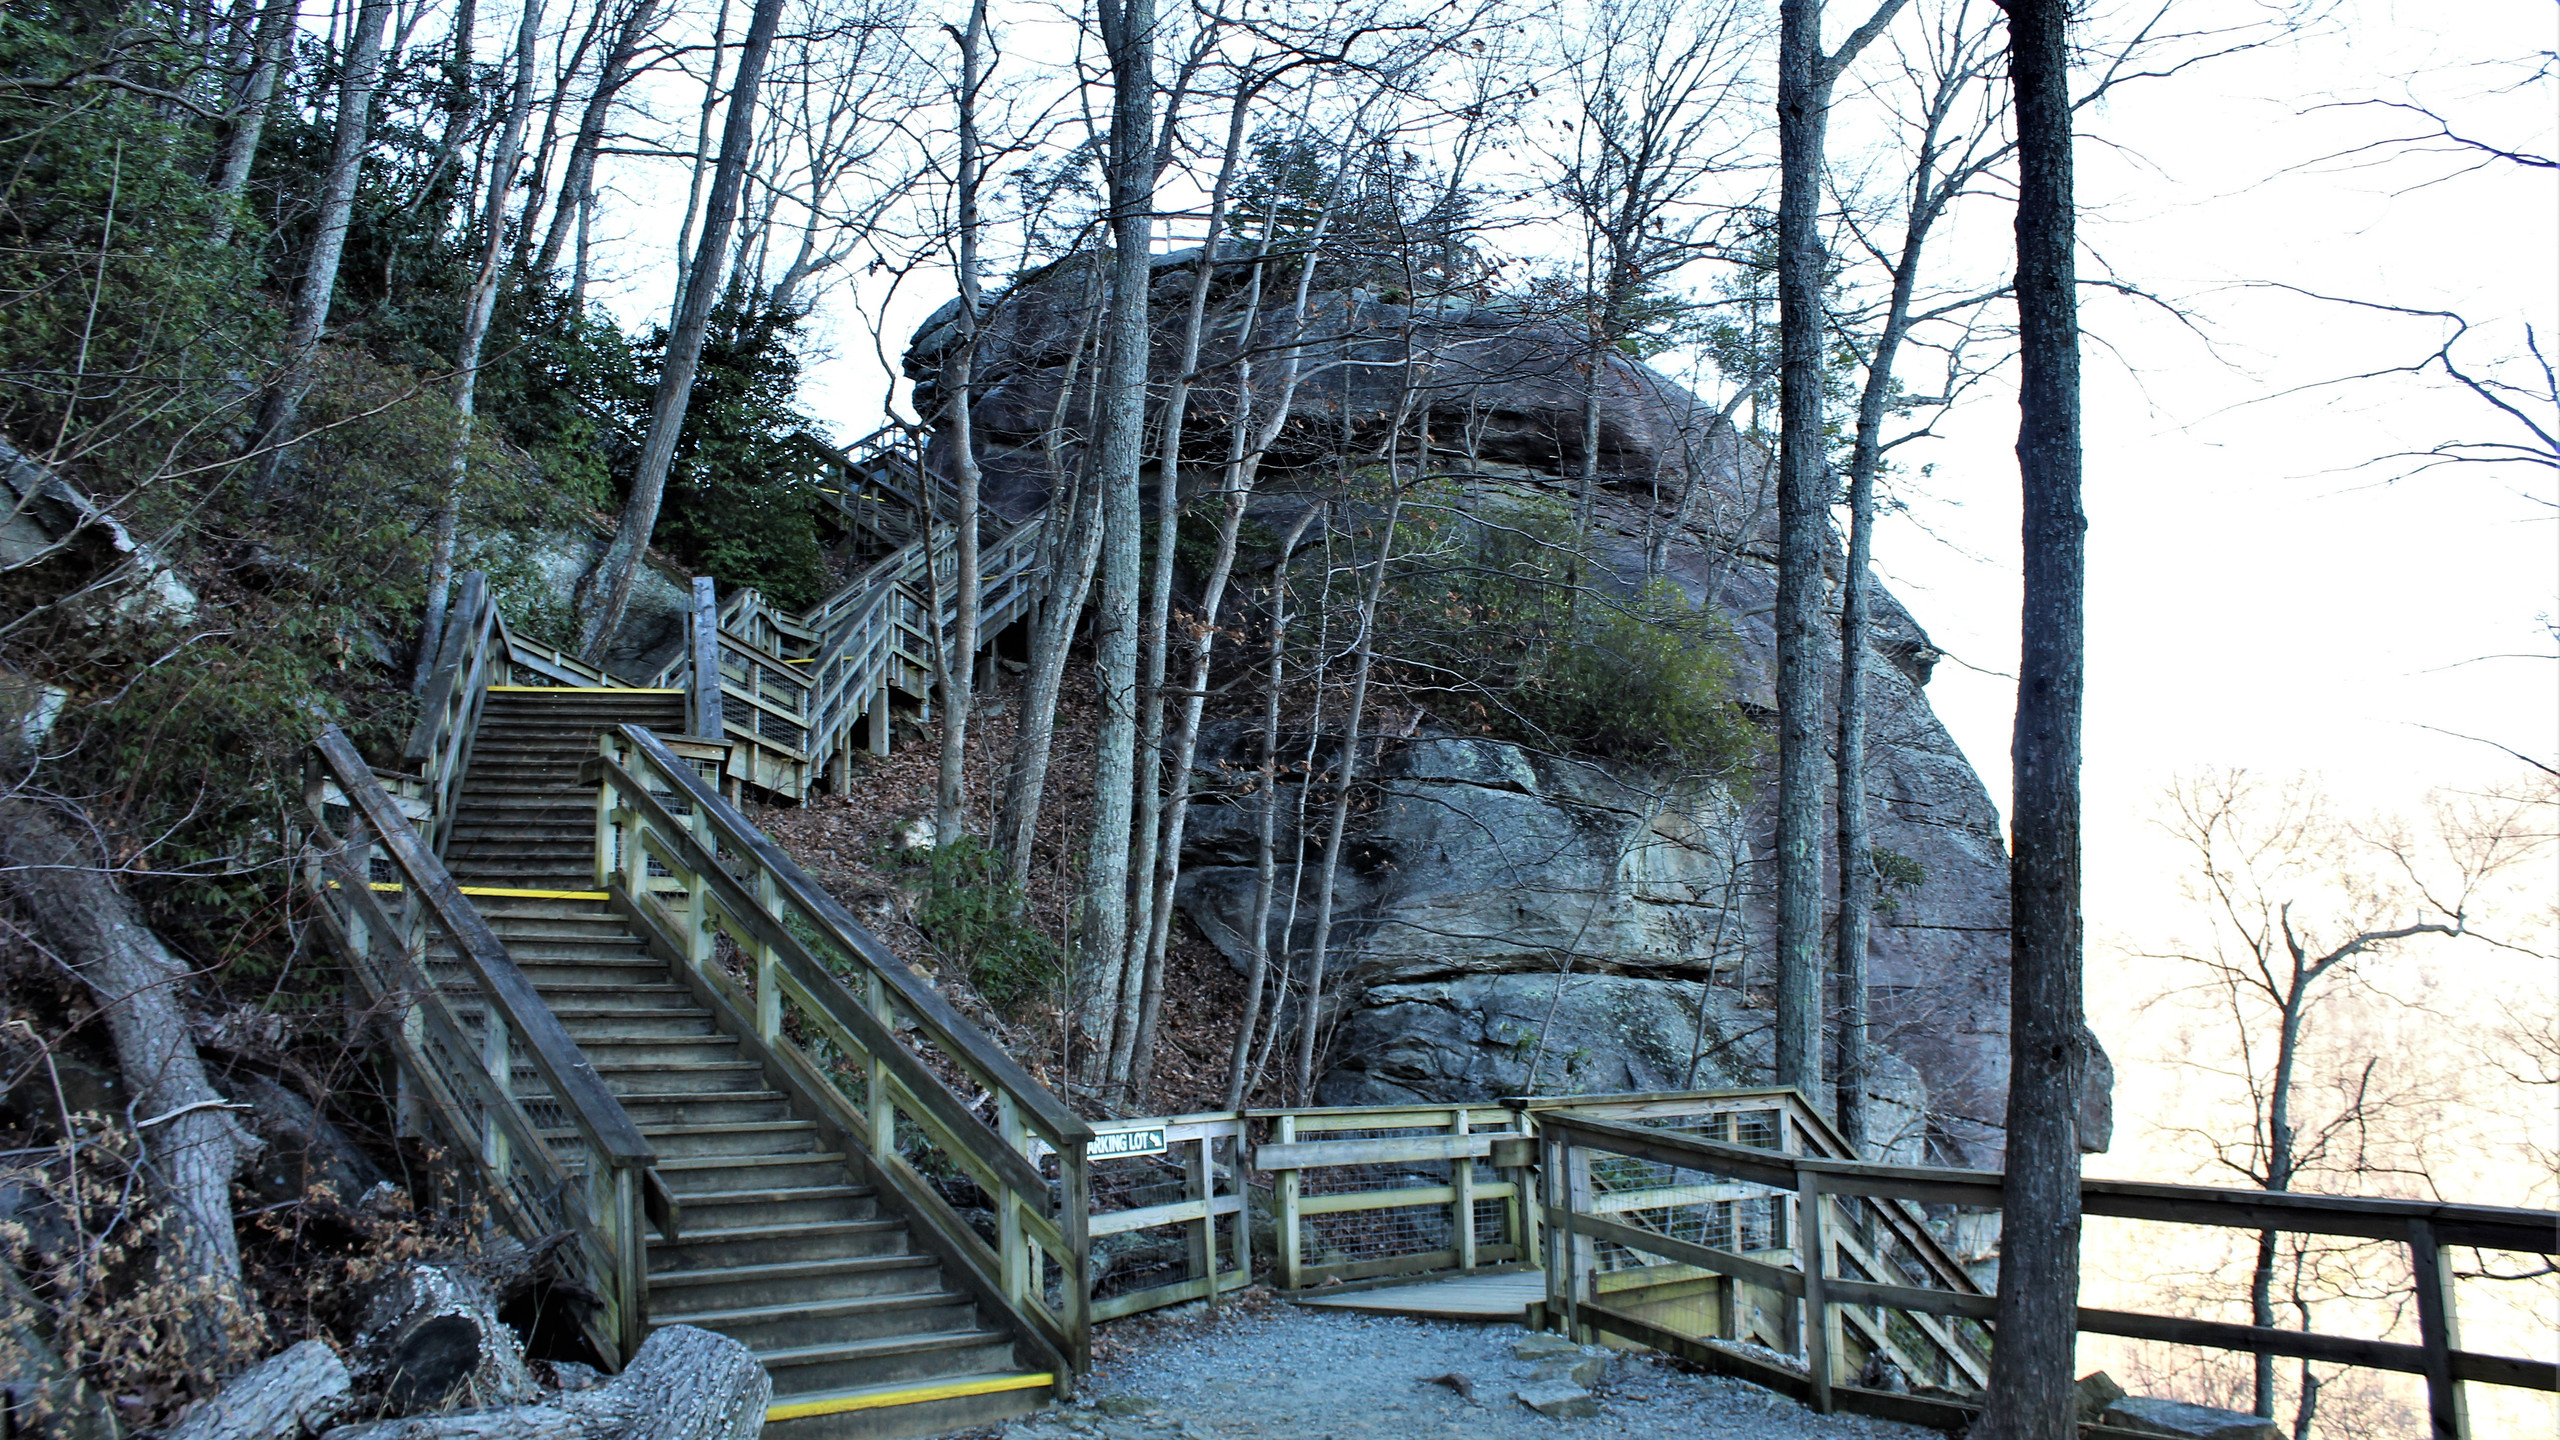 Stairs to Pulpit Rock